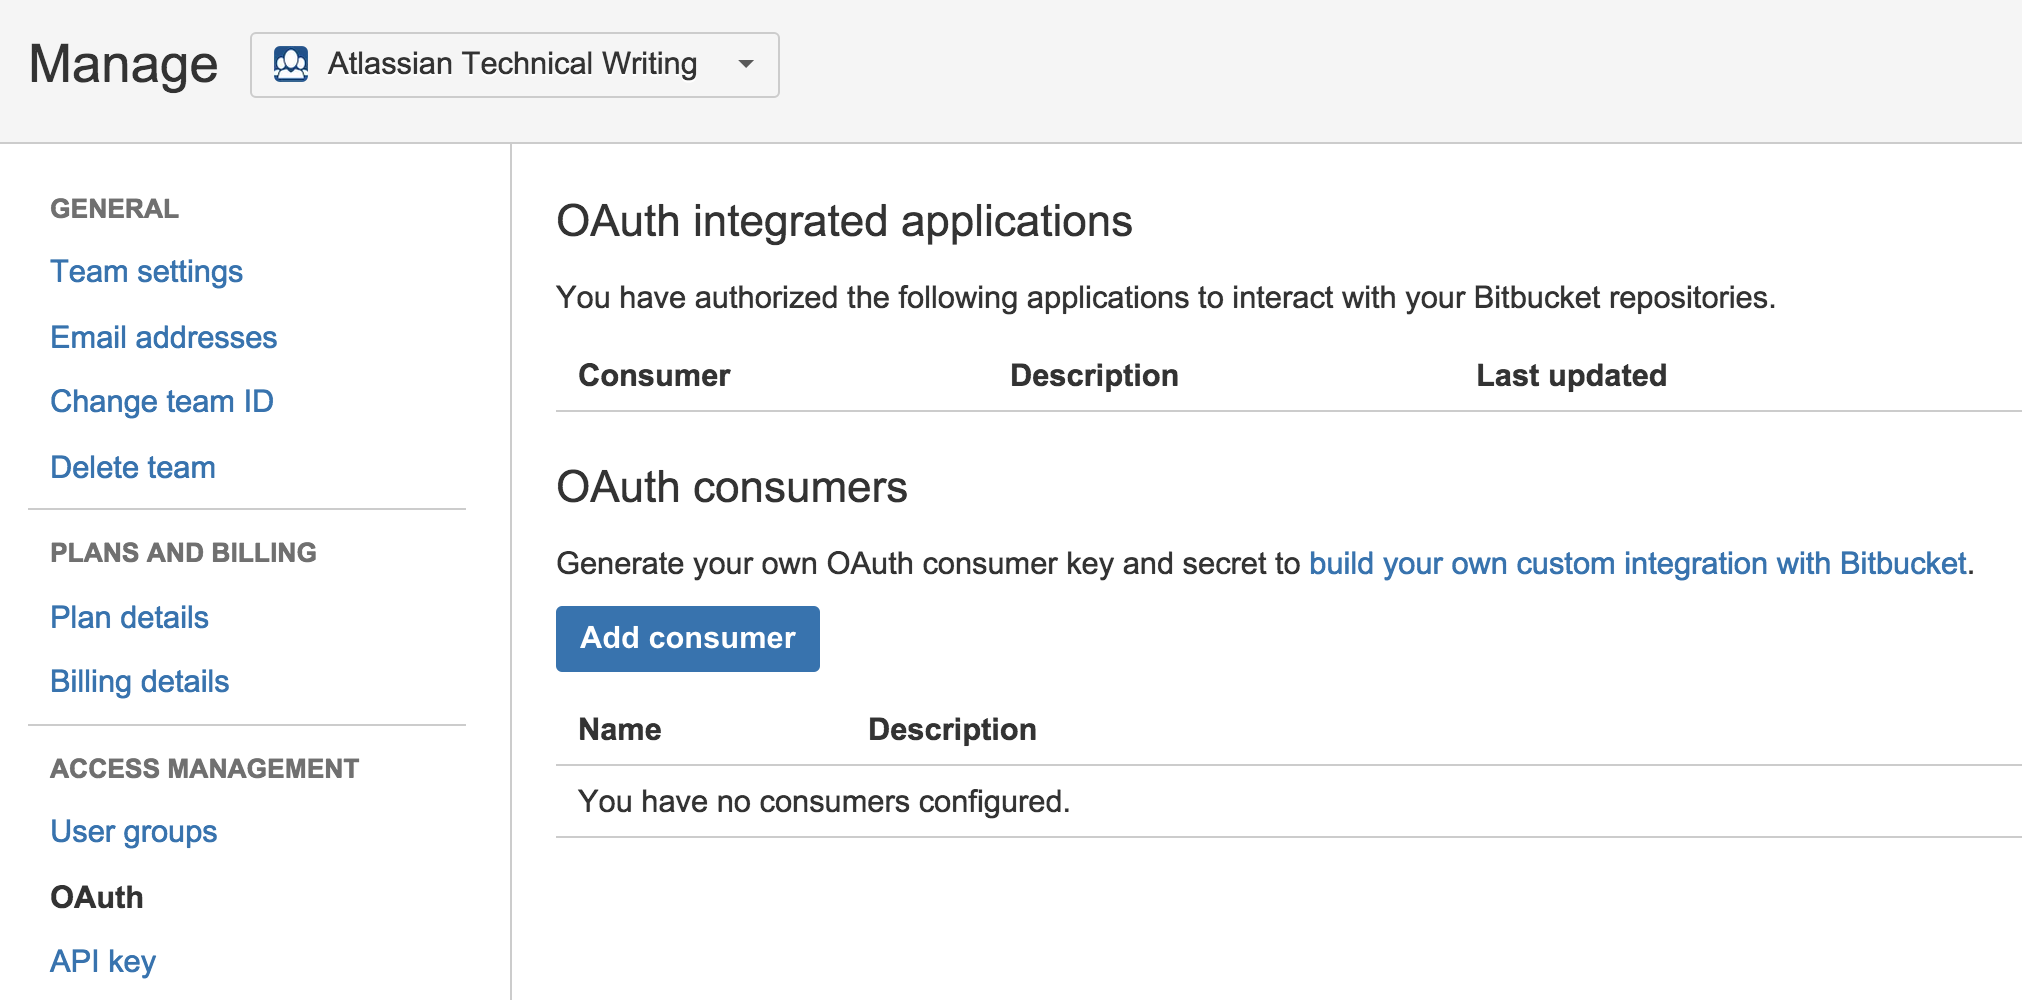 [OAuth integrated applications] ページ。